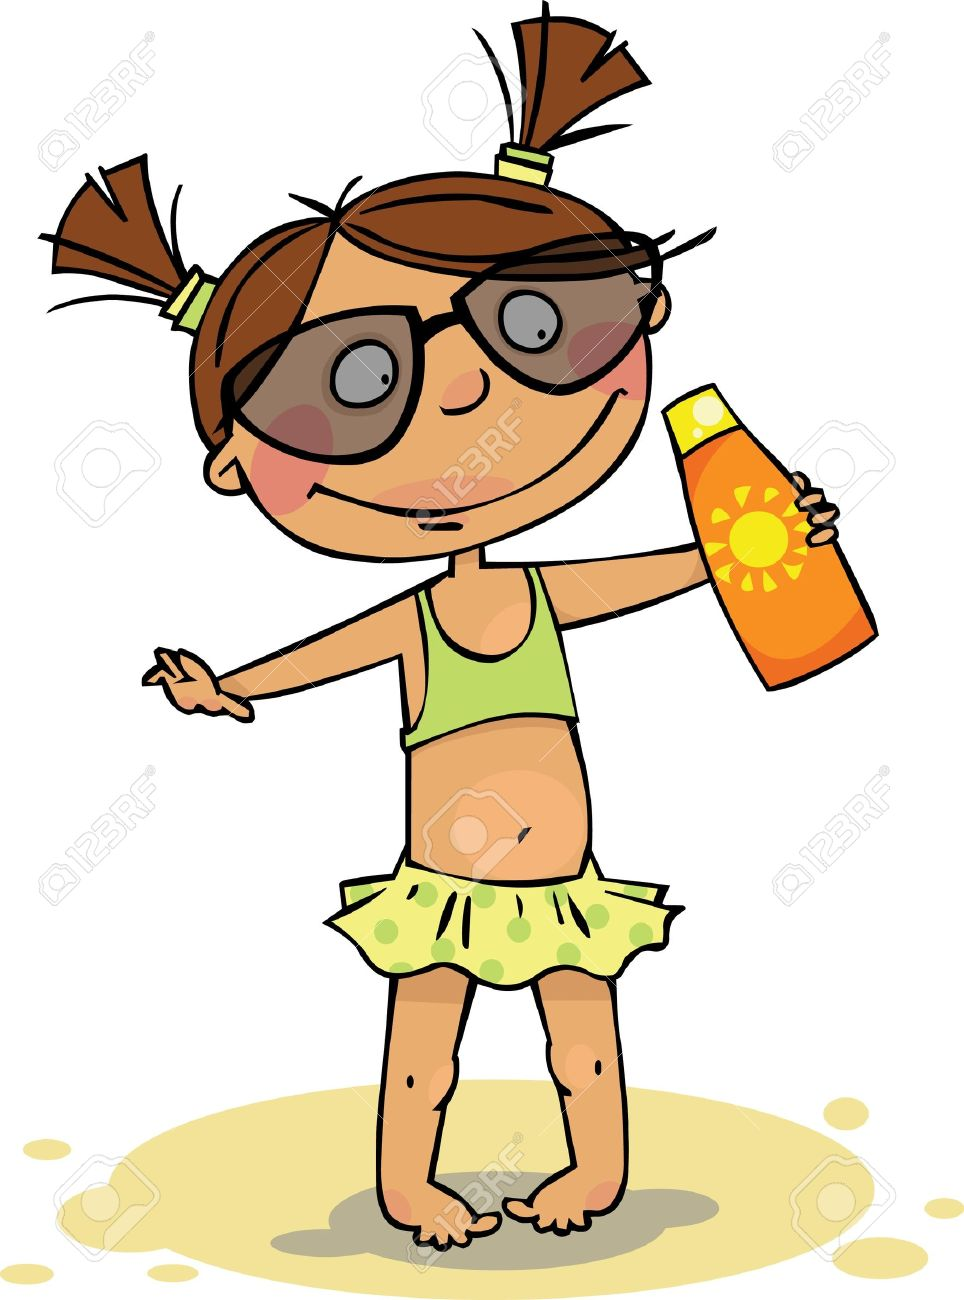 964x1300 Girl In Swimsuit With Sunscreen Royalty Free Cliparts, Vectors